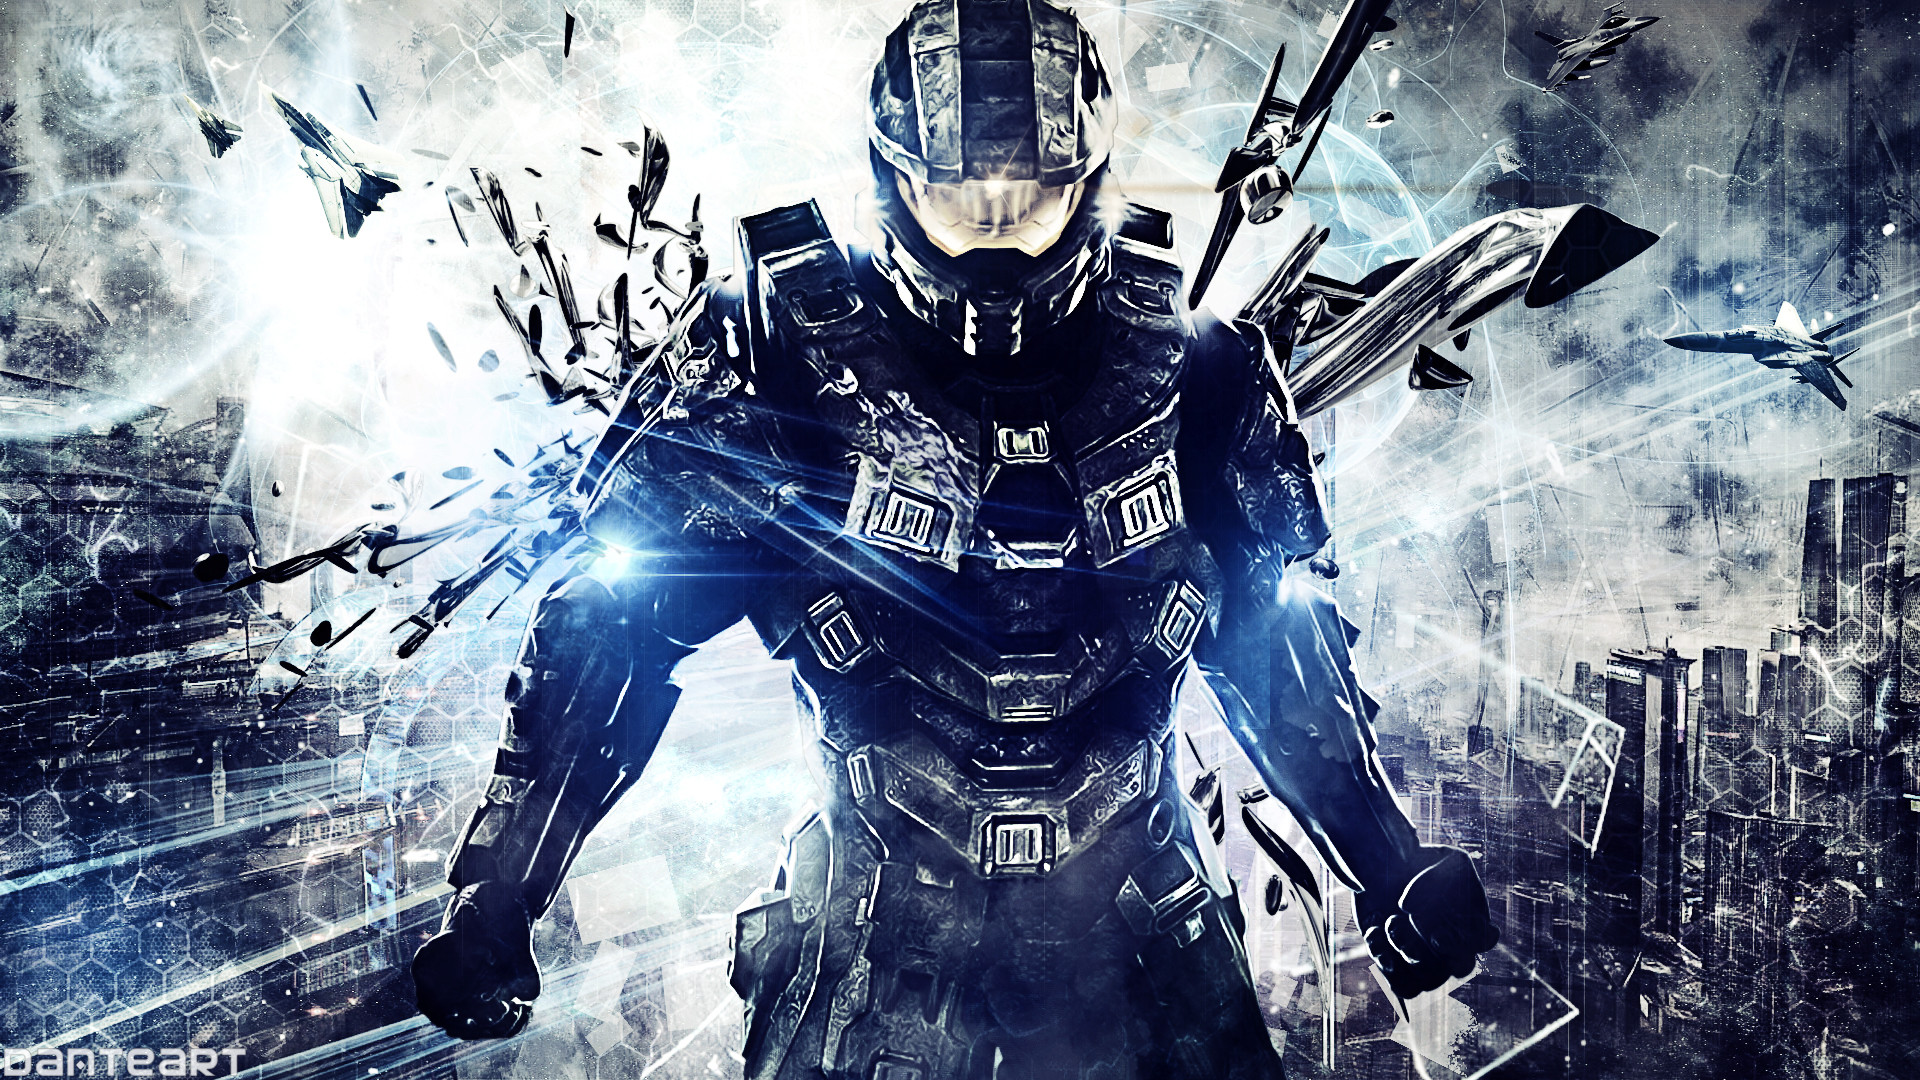 Cool Halo 4 Wallpapers 64 images 1920x1080